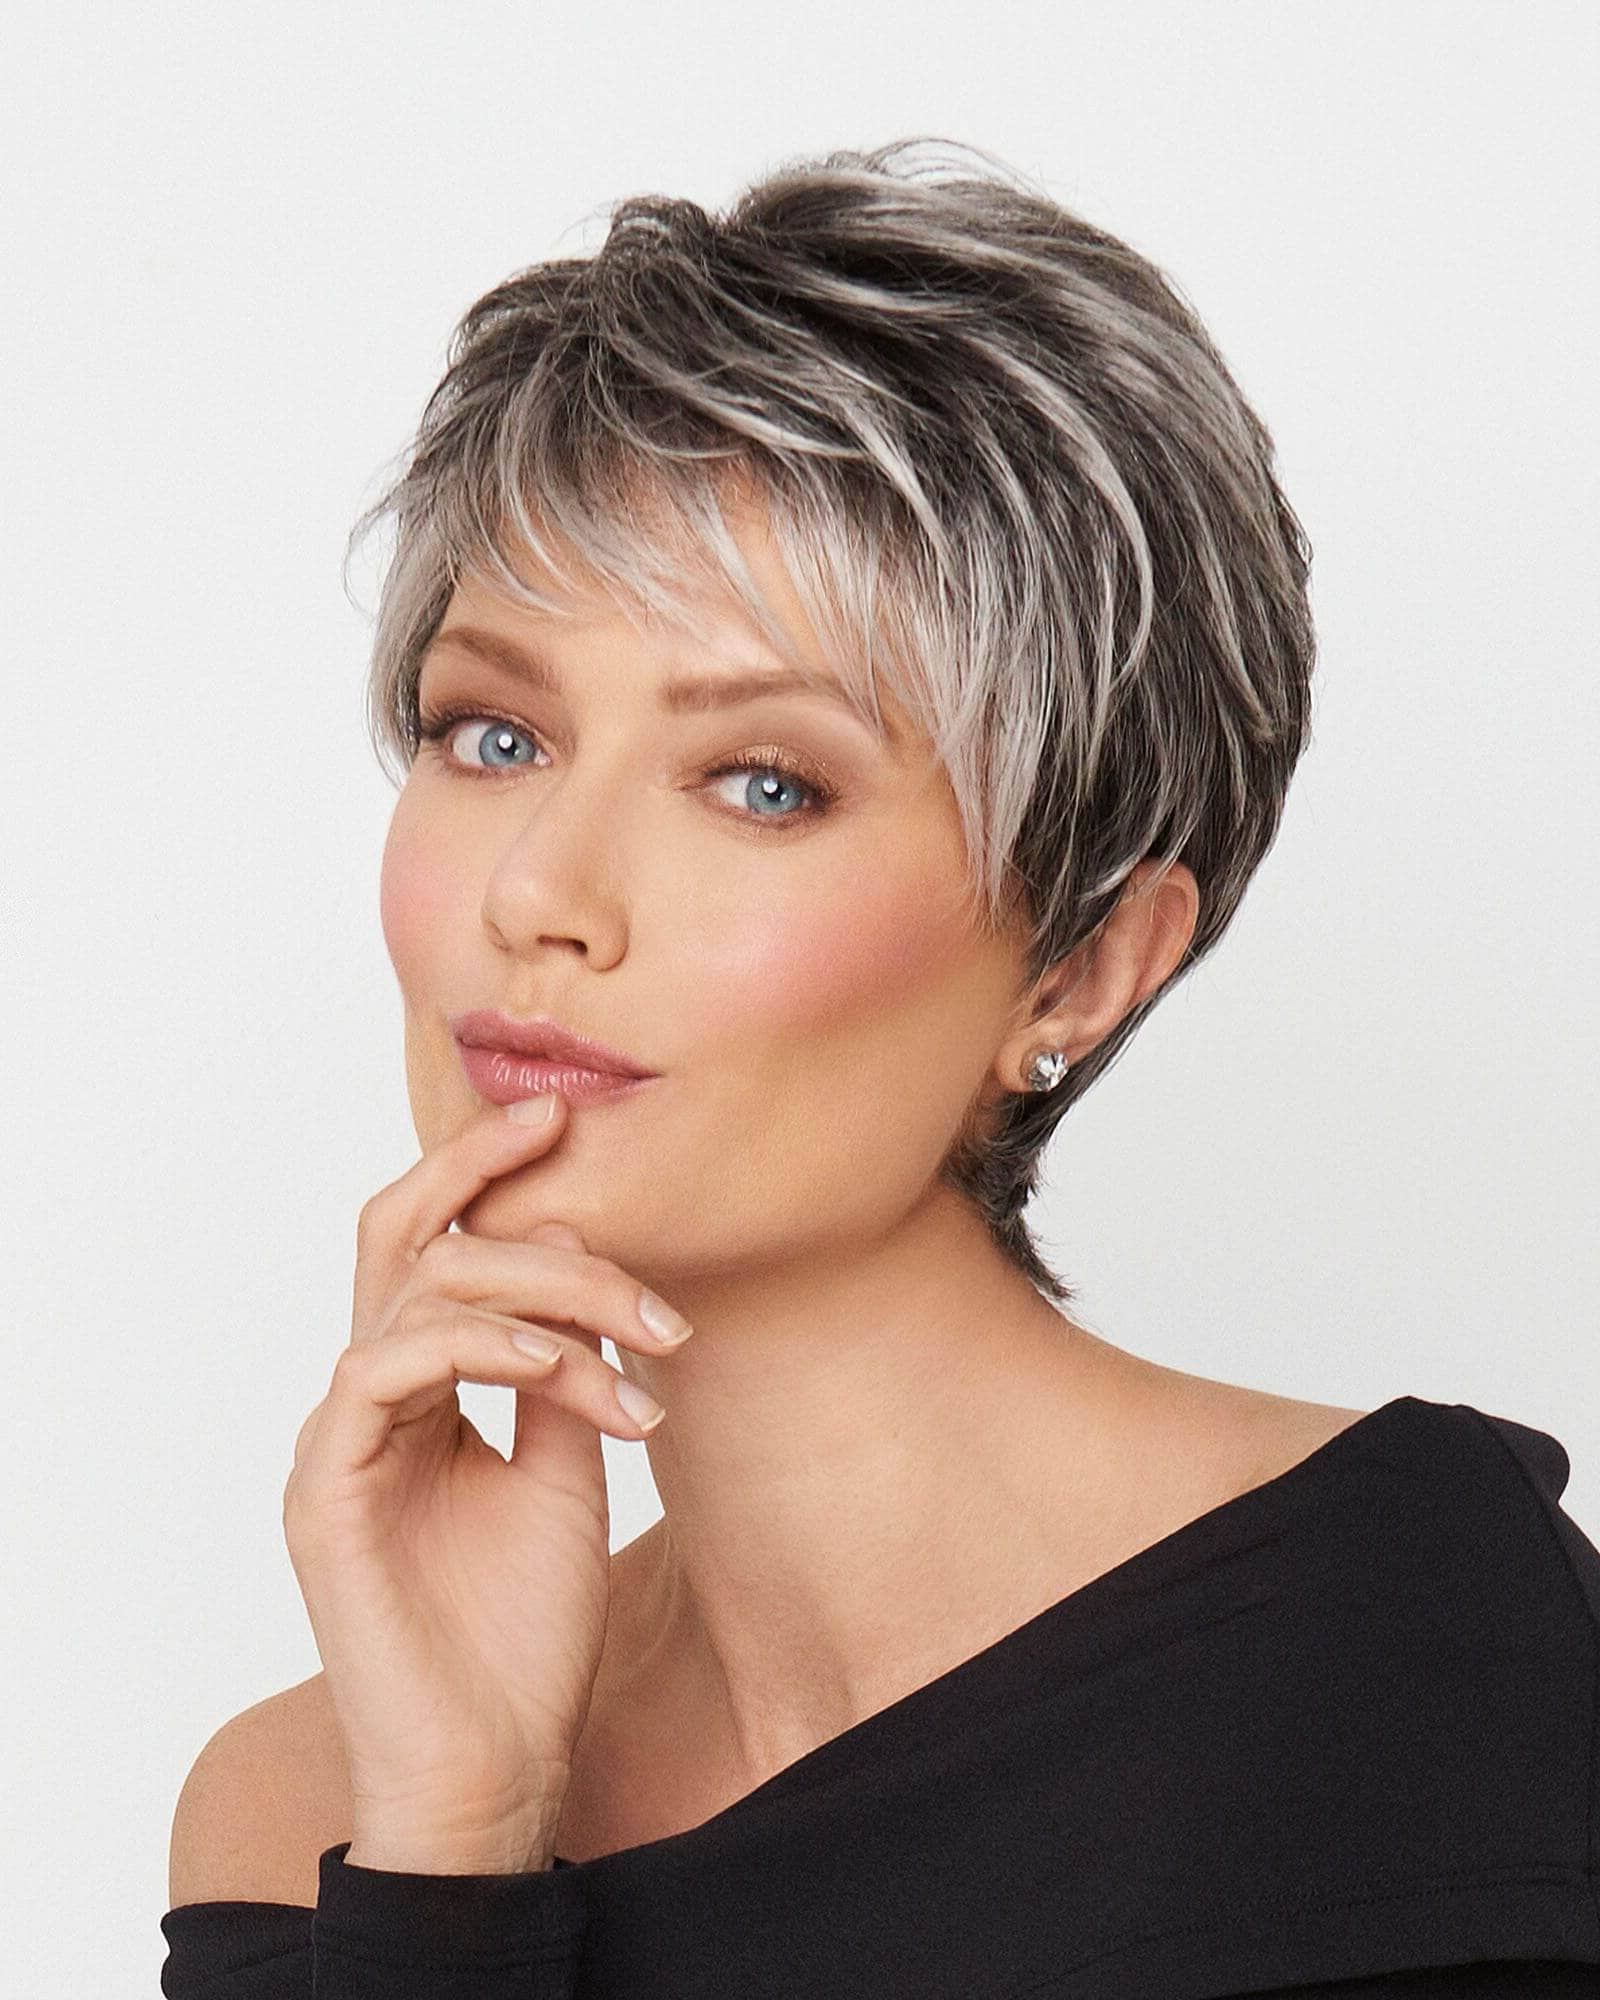 50 Pixie Haircuts You'll See Trending In 2018 With Regard To Pixie Layered Short Haircuts (View 25 of 25)